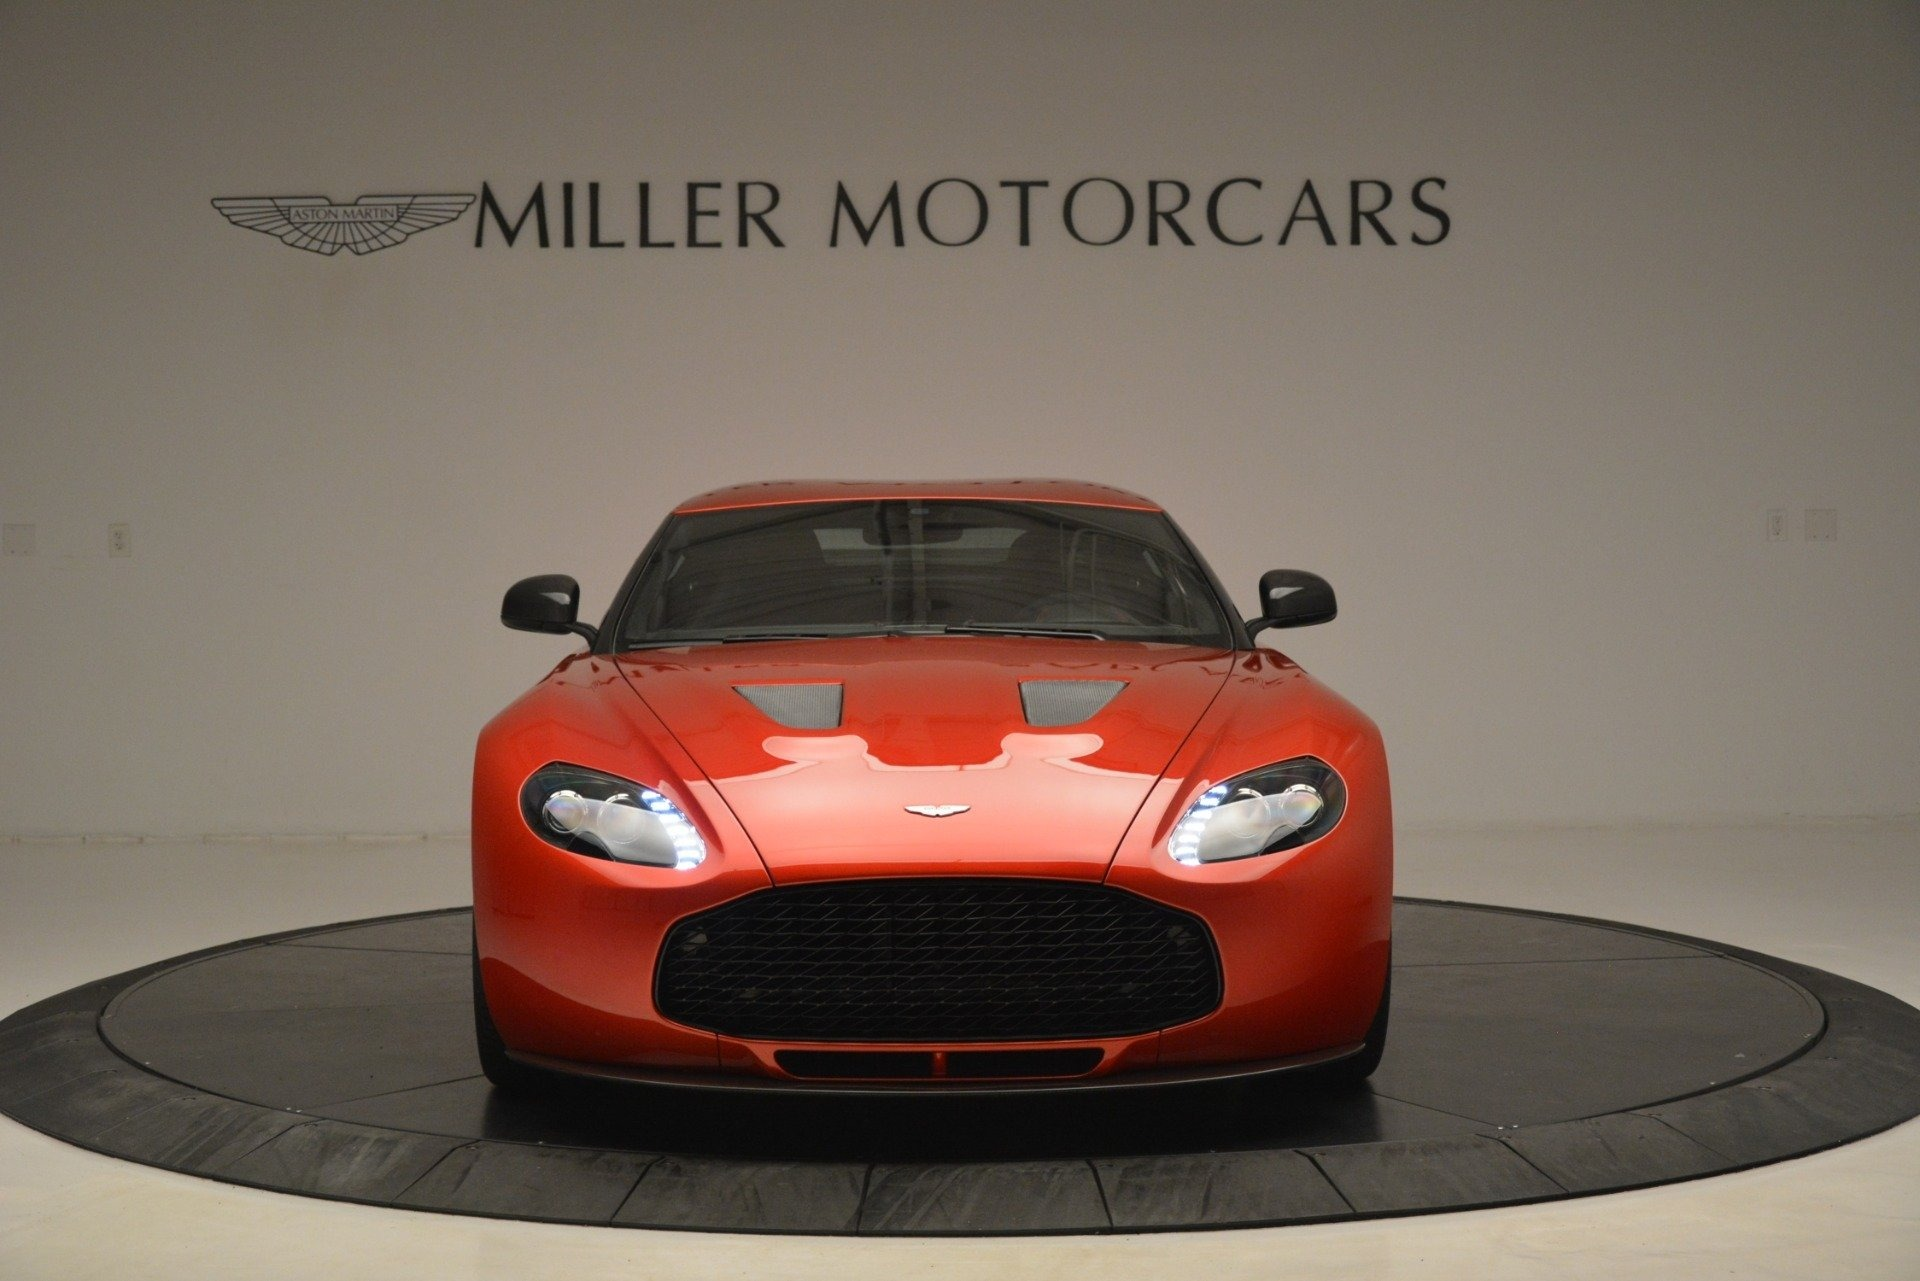 Used 2013 Aston Martin V12 Zagato Coupe For Sale In Westport, CT 3181_p8